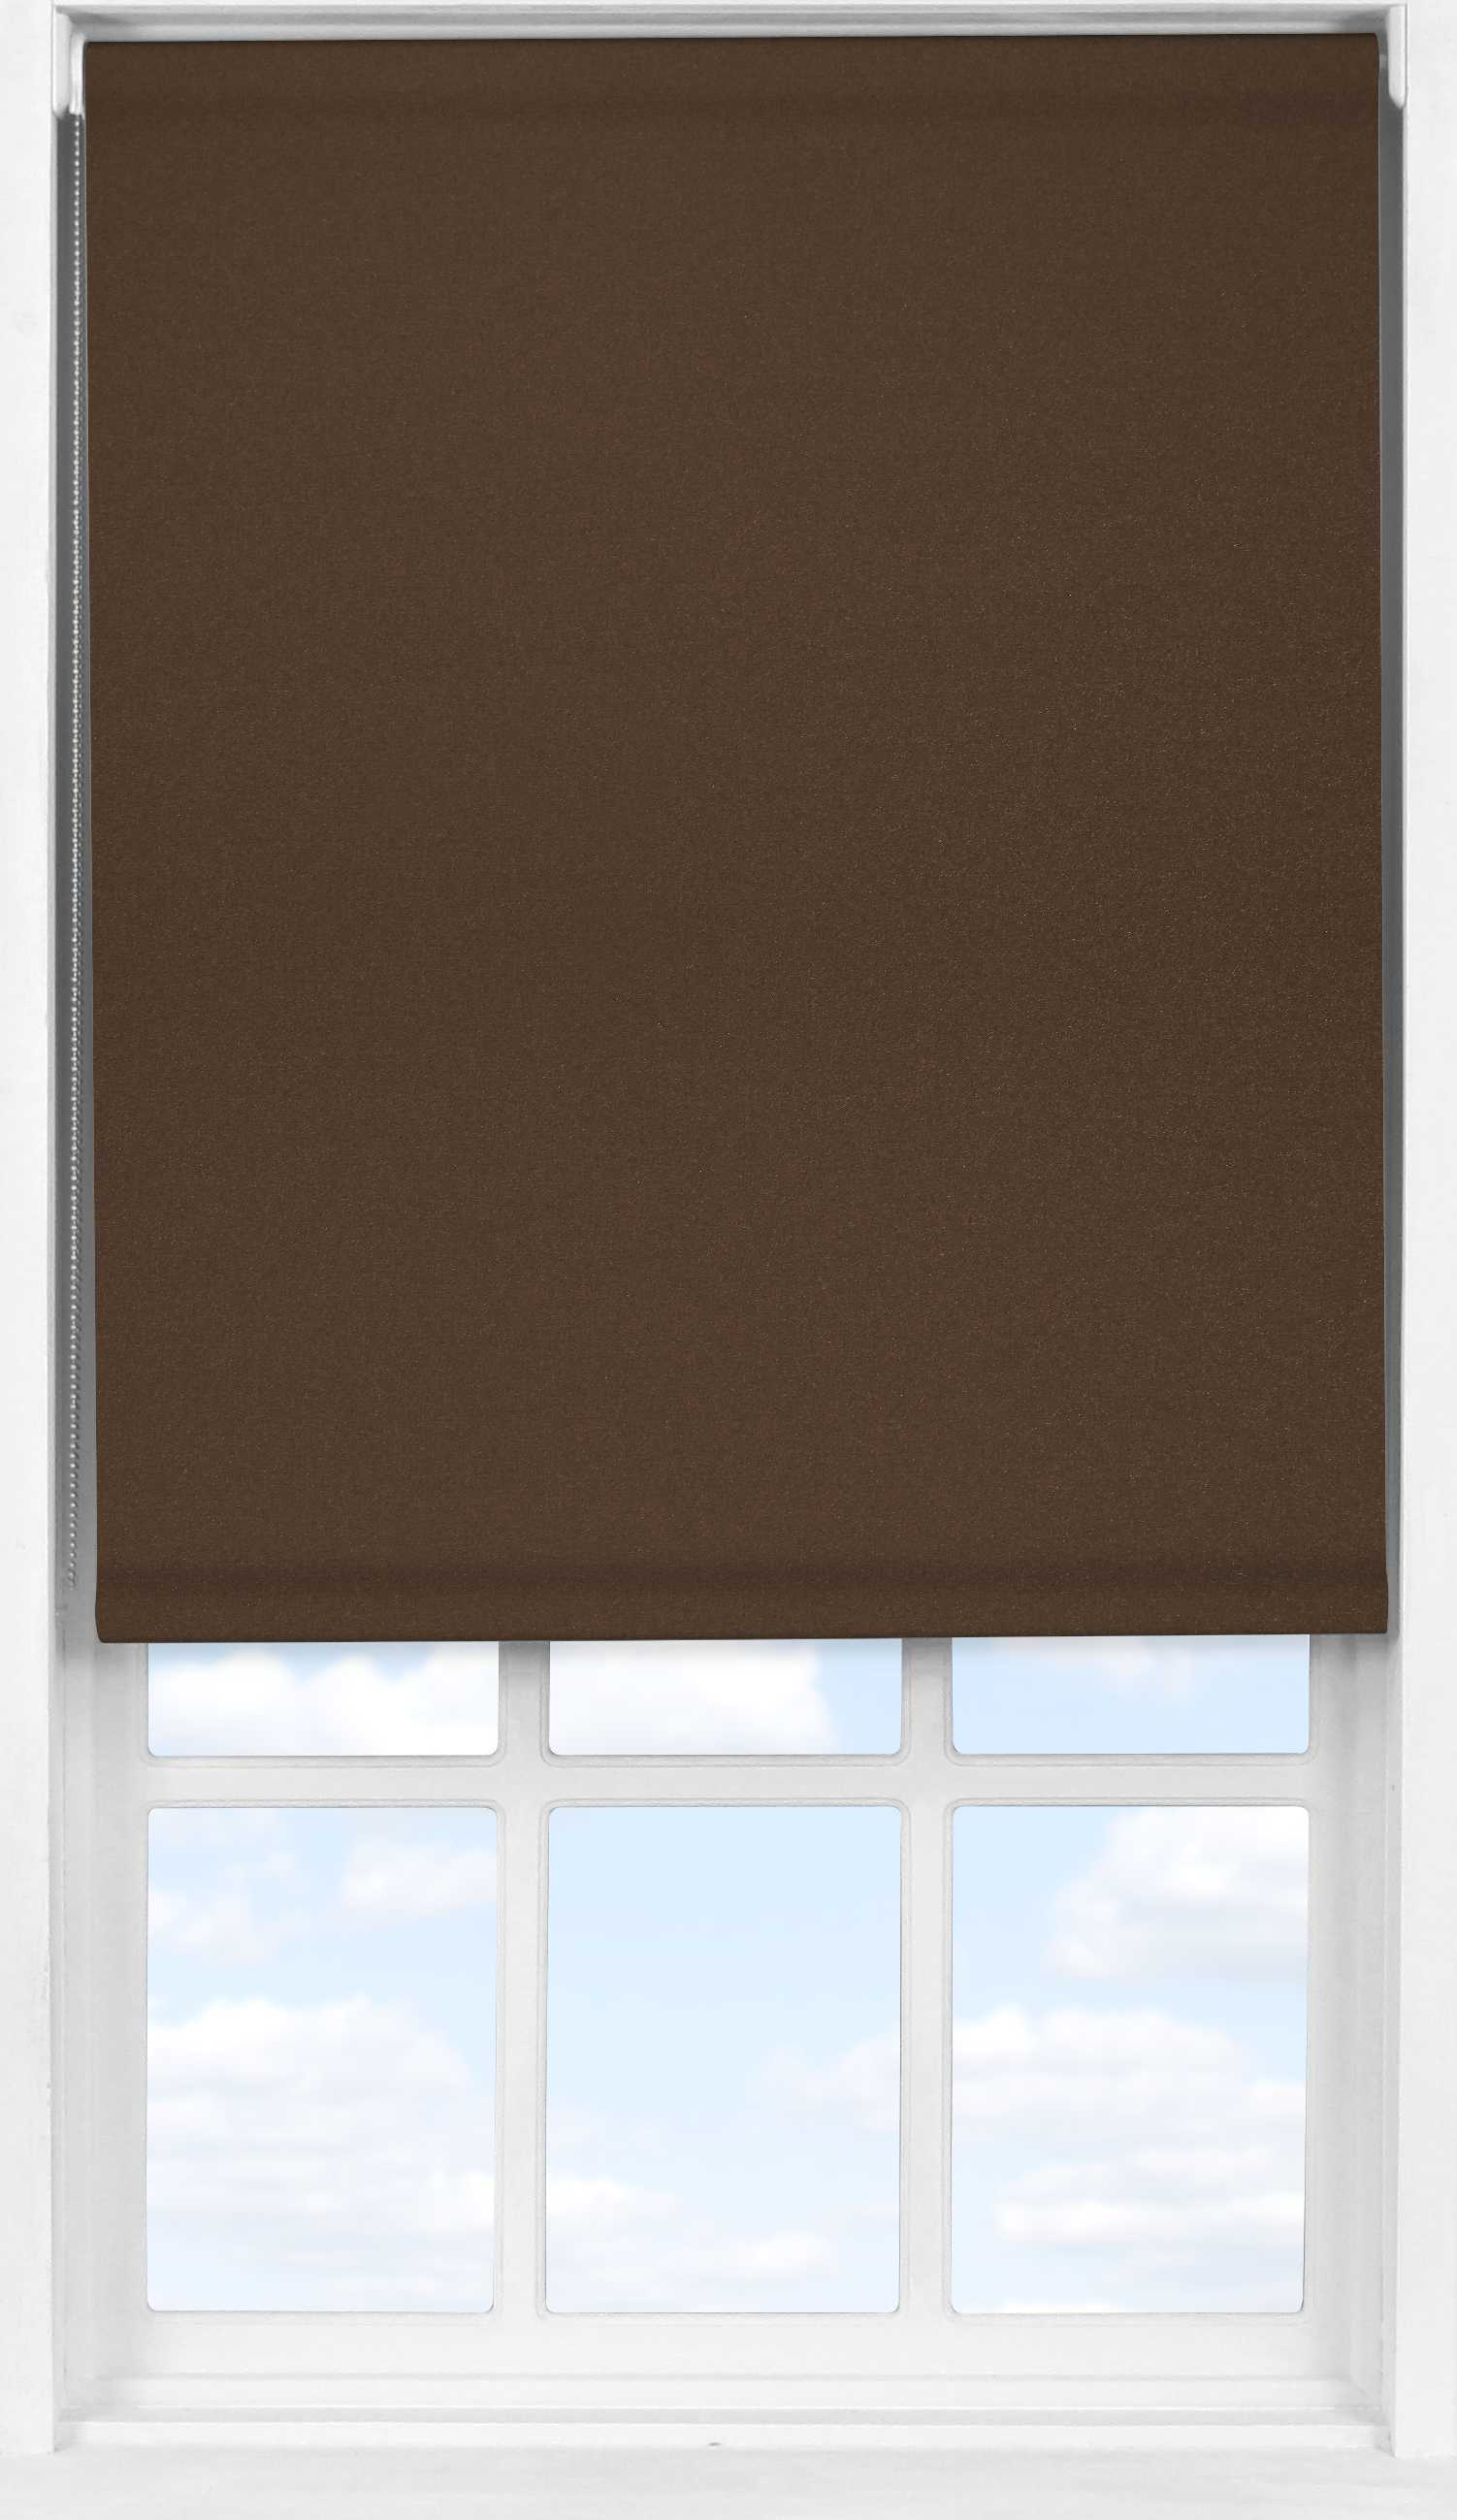 Easifit Roller Blind in Rich Chestnut Translucent